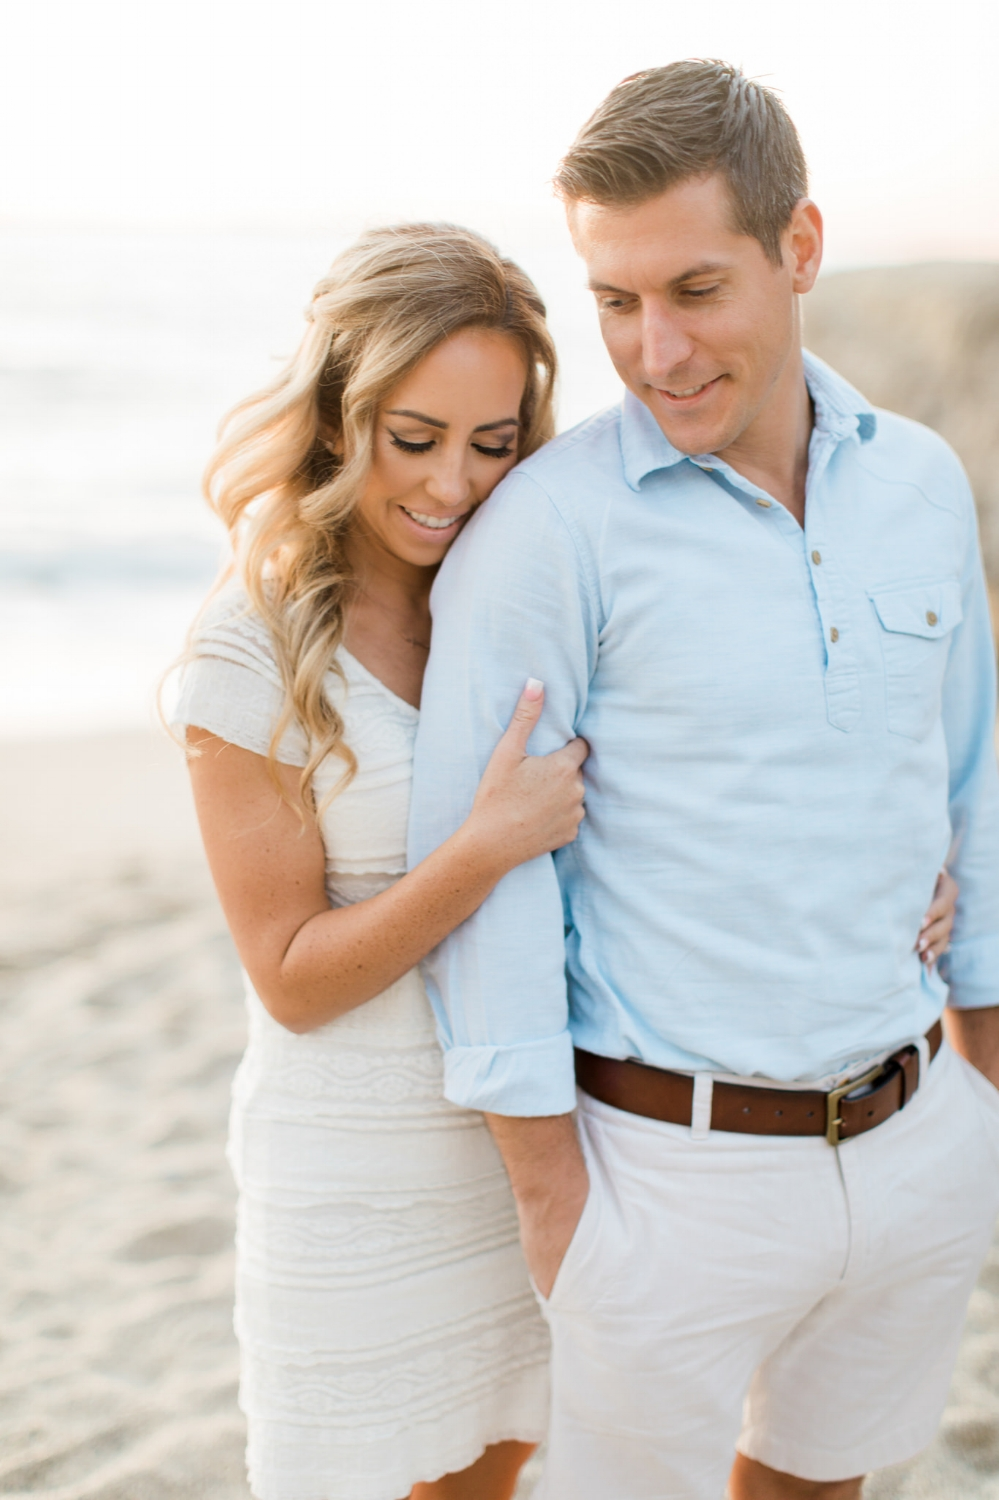 Romantic Engagement Photos at Beach. Hair and makeup by Vanity Belle in Orange County (Costa Mesa) and San Diego (La Jolla)